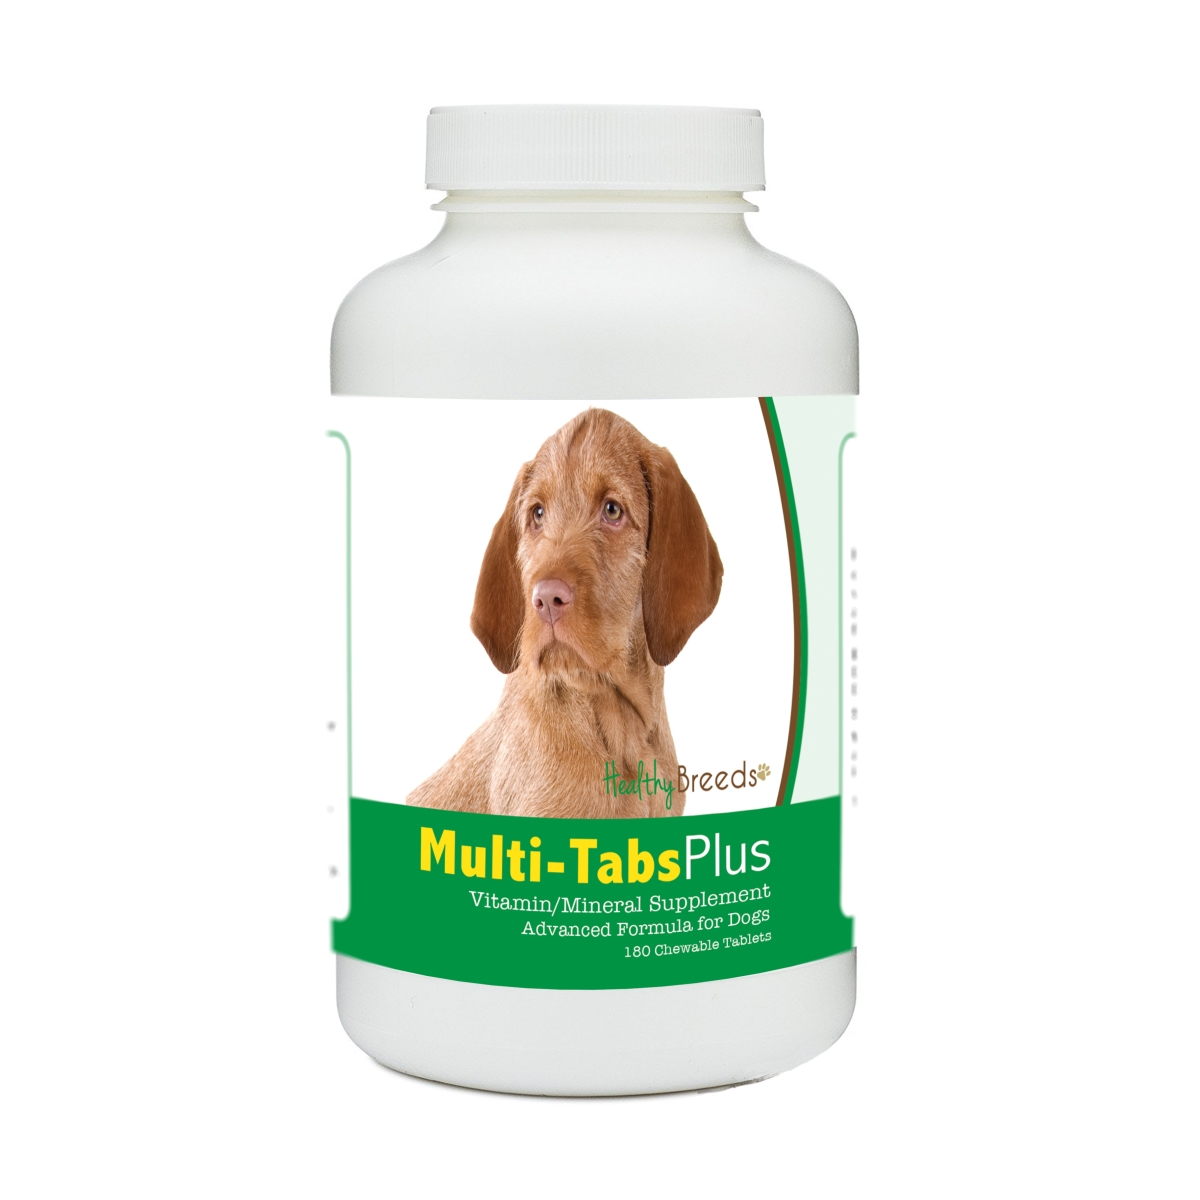 Healthy Breeds 840235172468 Wirehaired Vizsla Multi-Tabs Plus Chewable Tablets - 180 Count